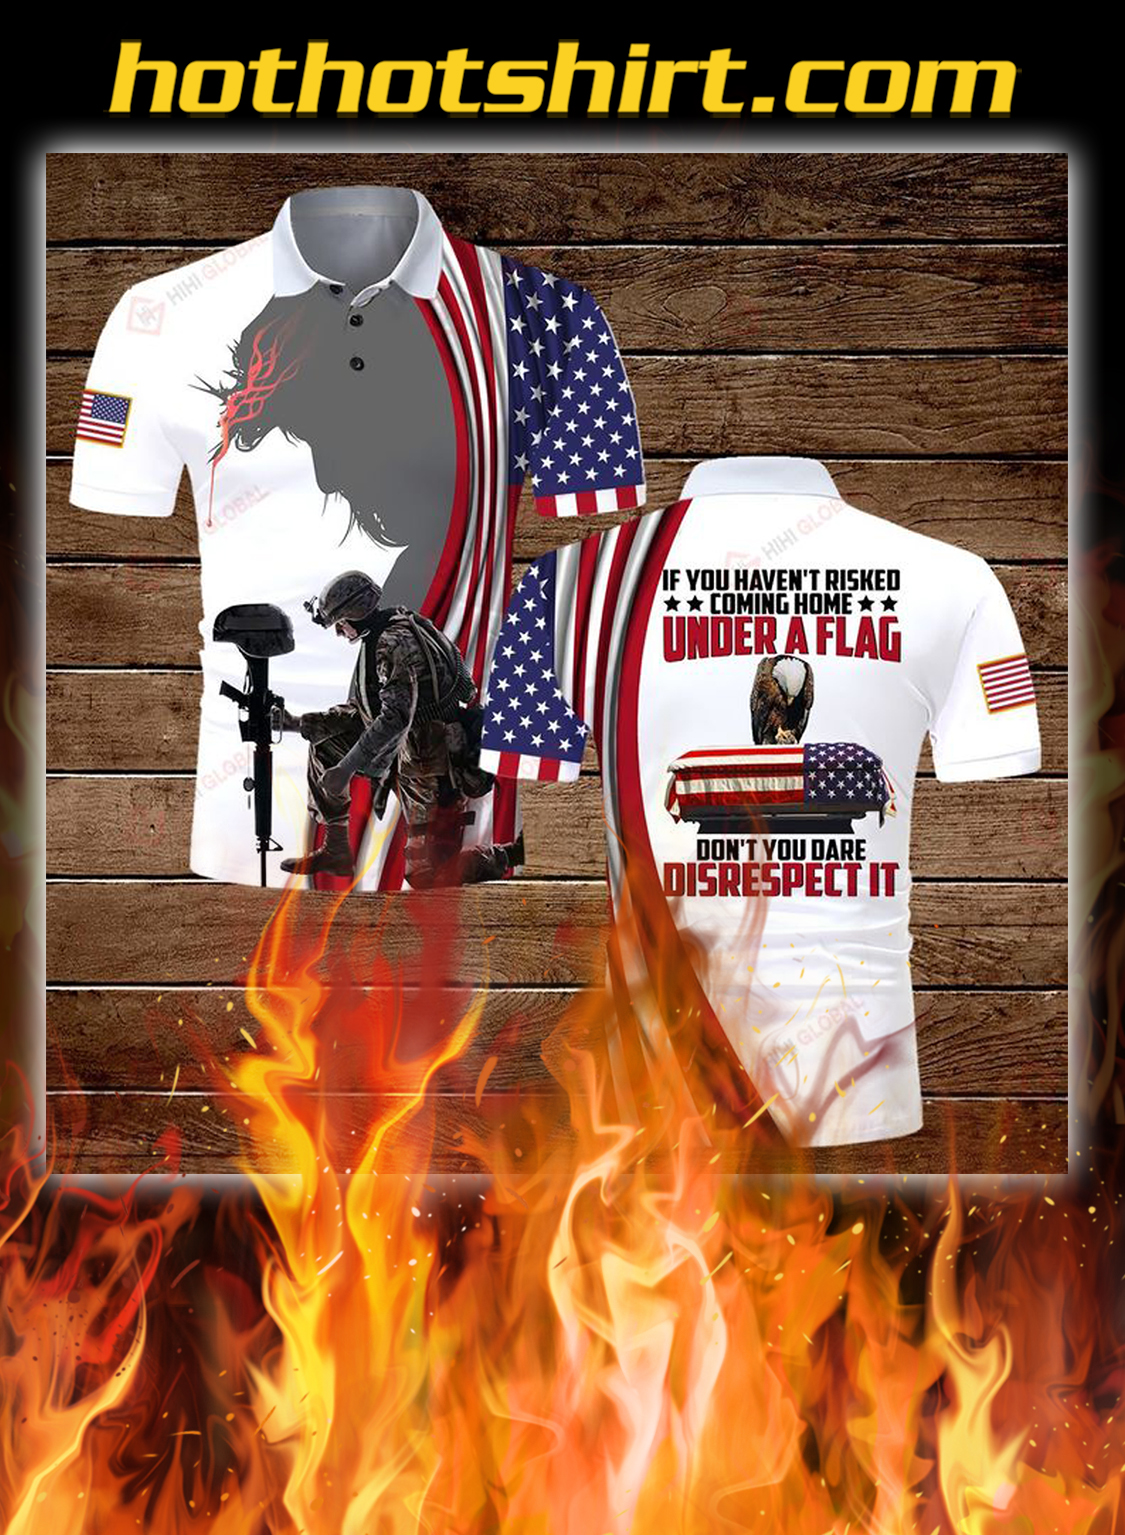 If you haven't risked coming home under a flag don't you dare disrespect 3d all over printed polo